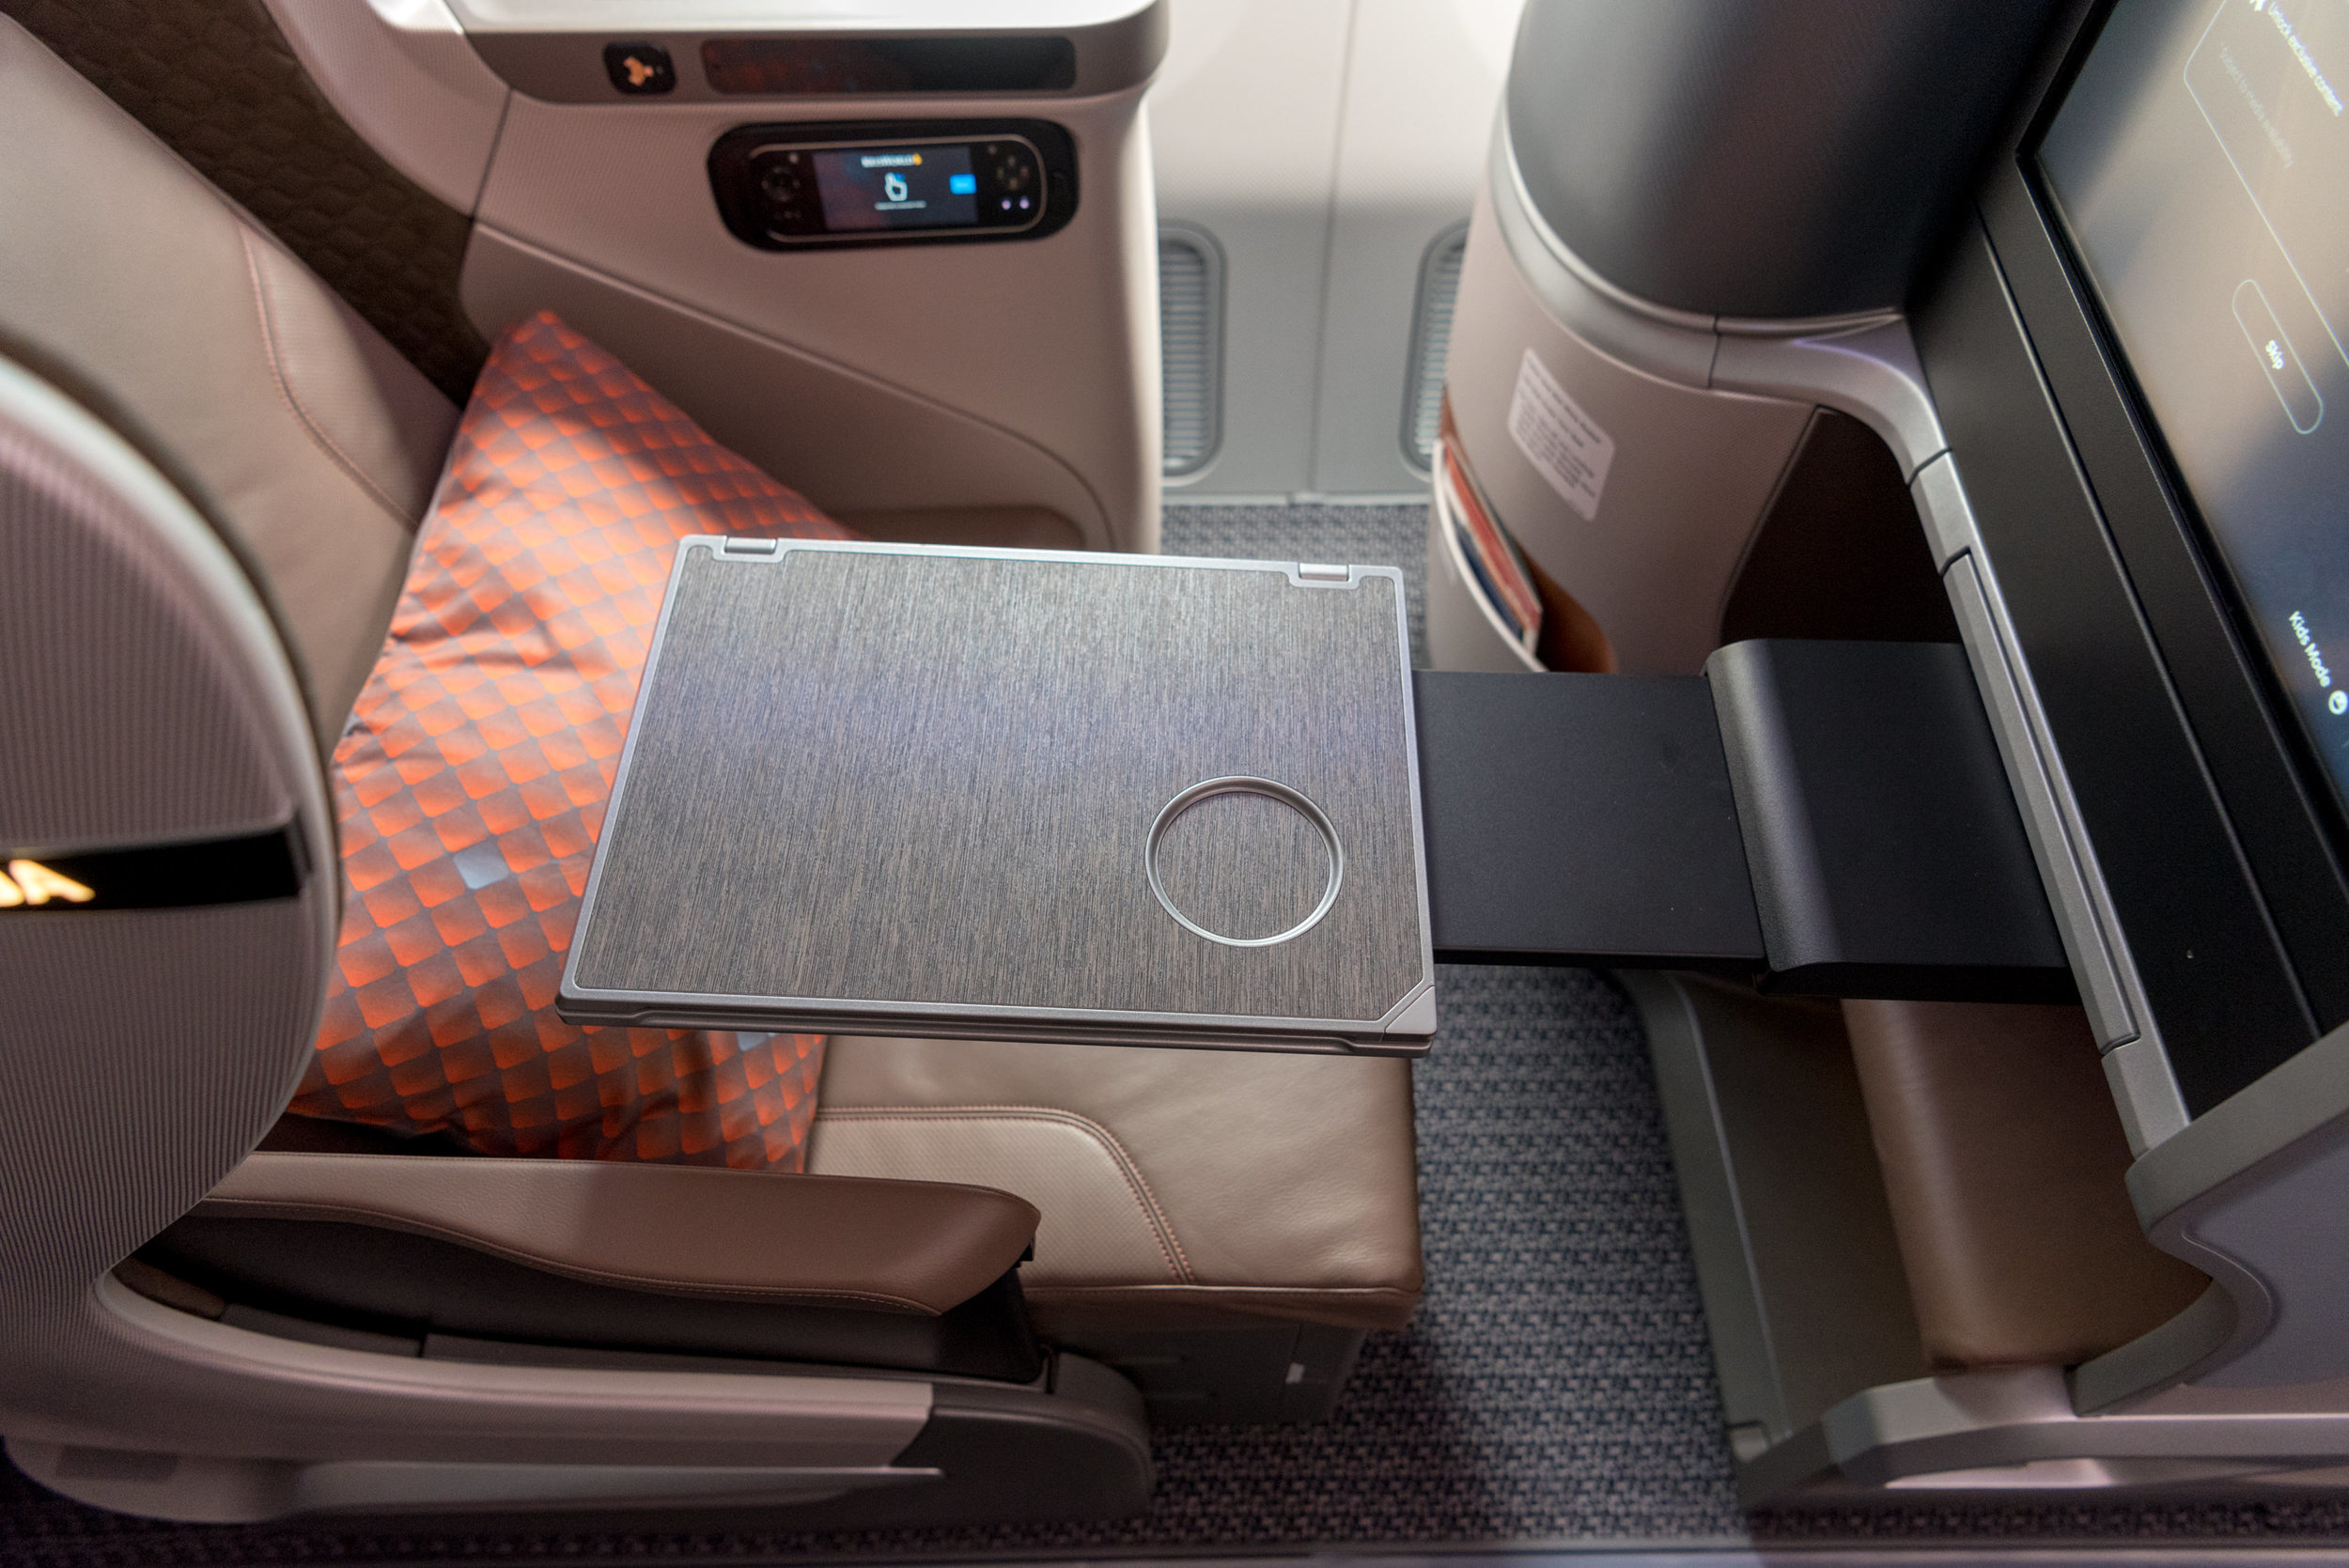 Singapore Airlines New Regional Business Class-1671.jpg